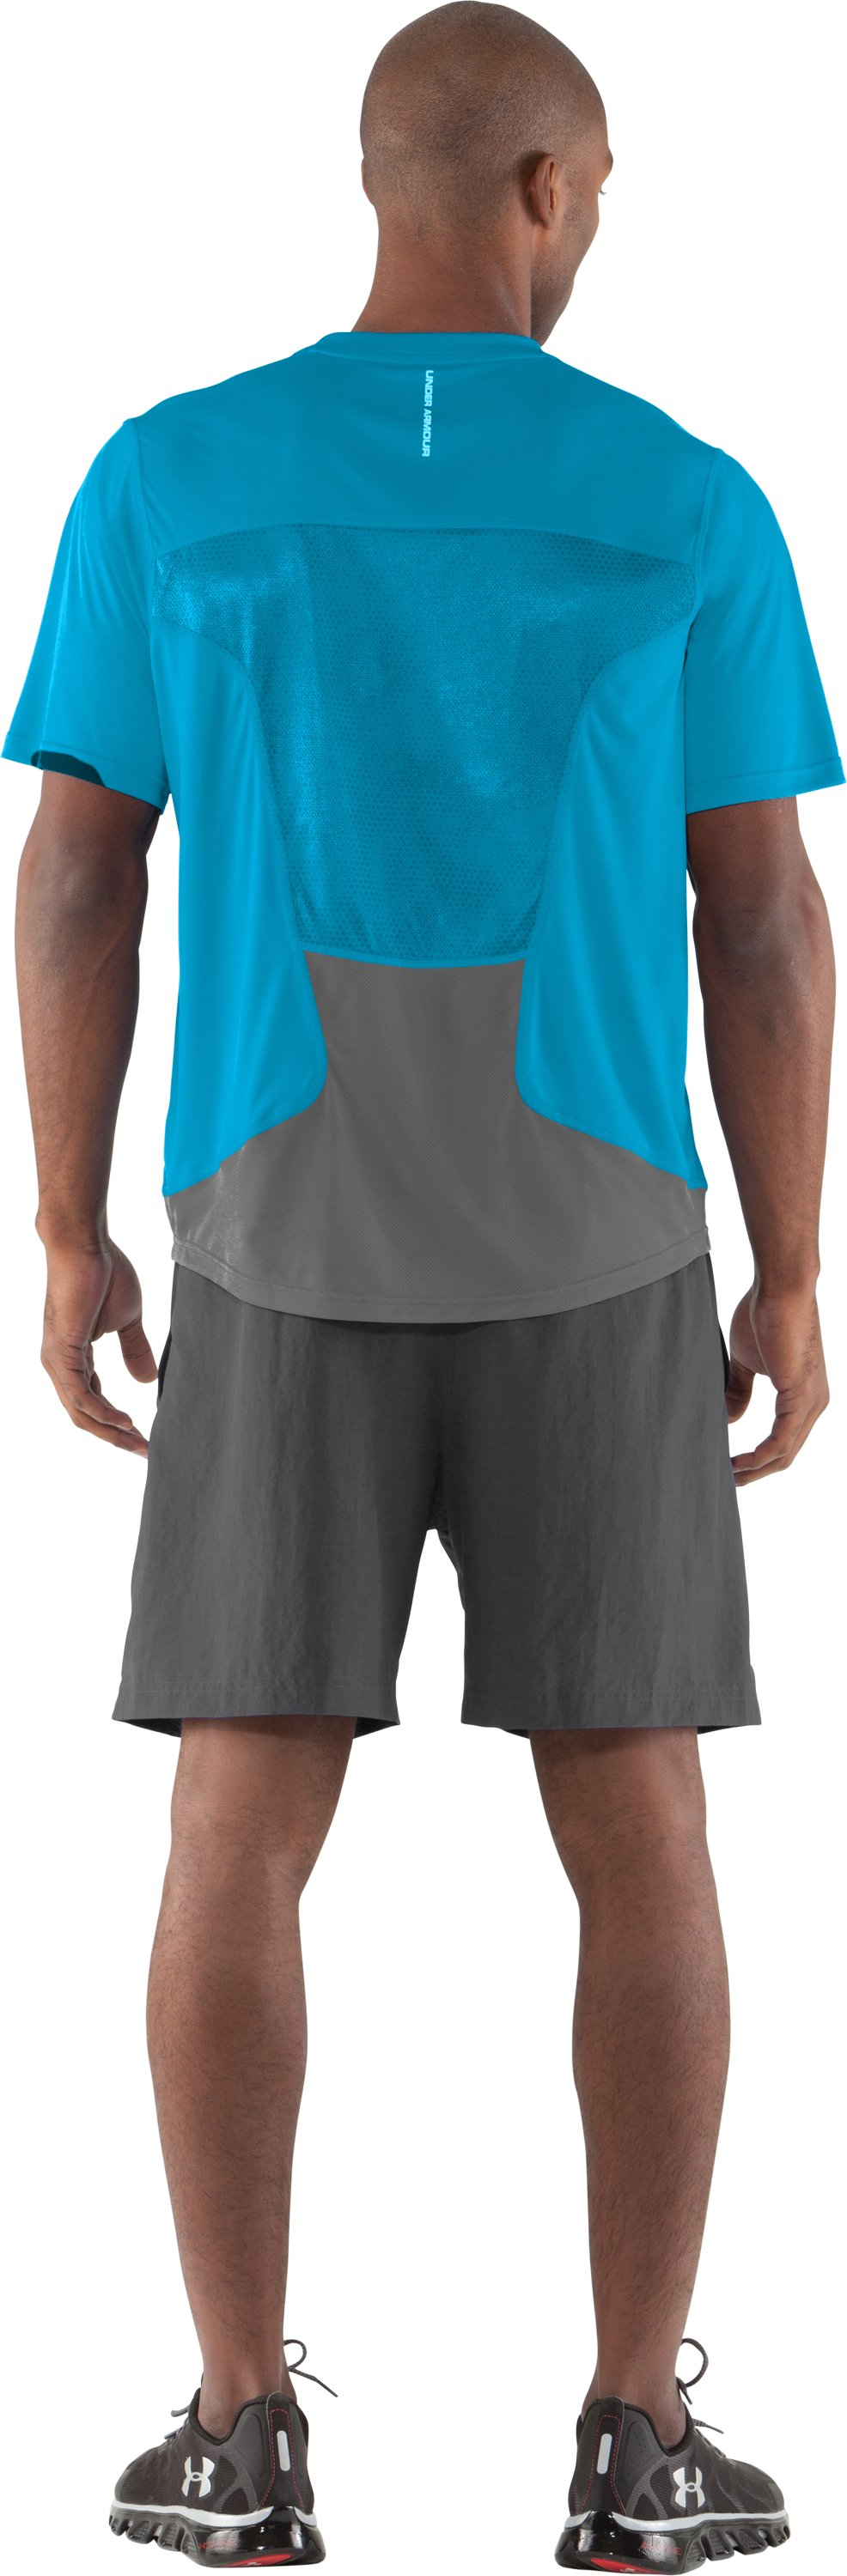 Men's HeatGear® Flyweight Run Short Sleeve, Cortez, Back